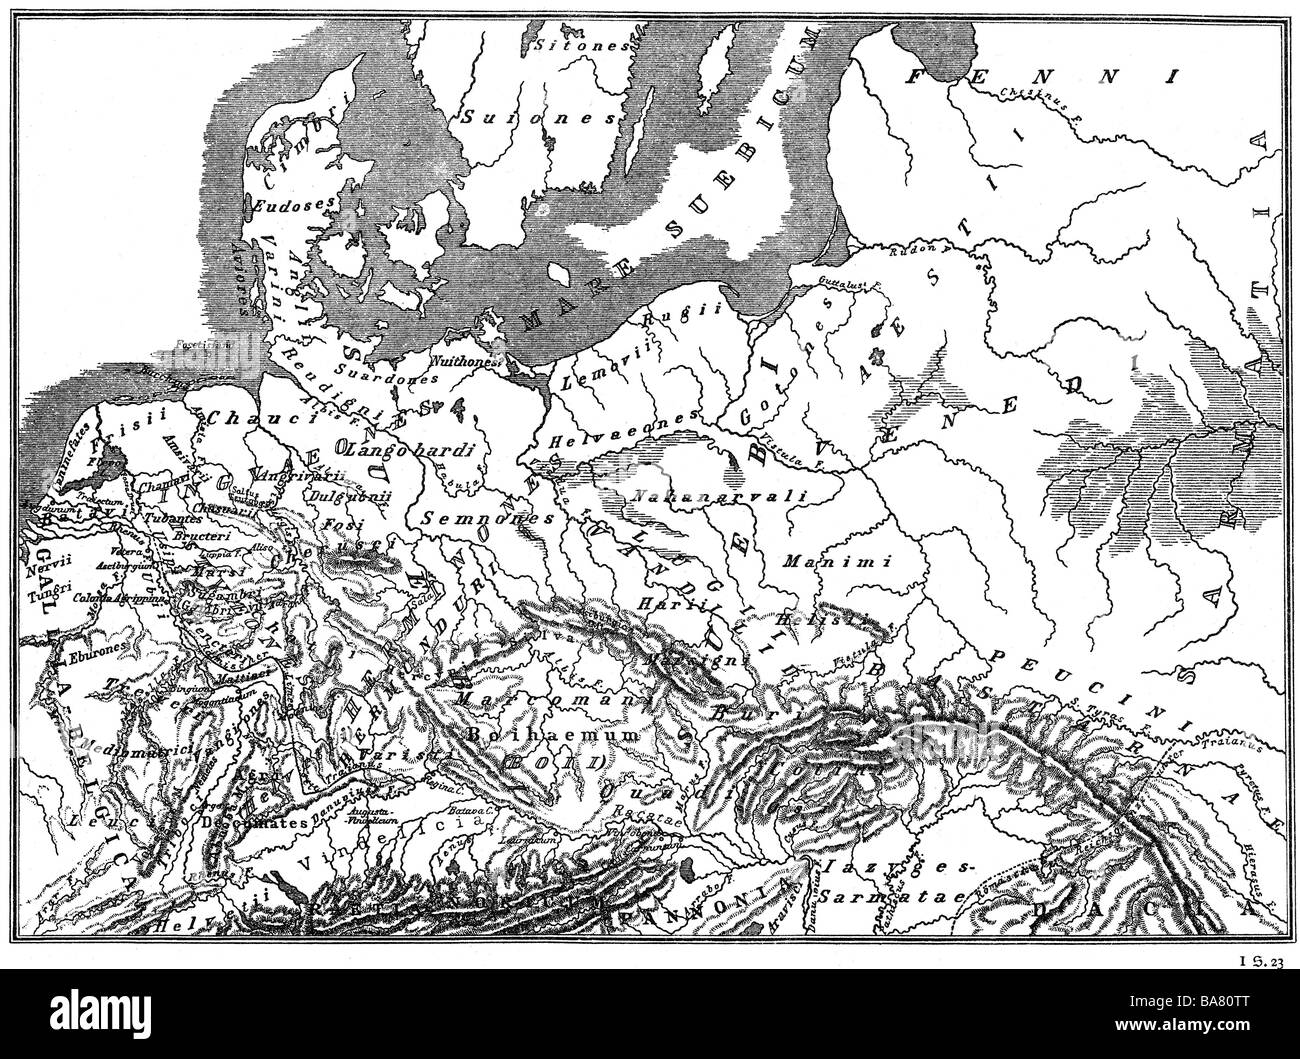 cartography, historical maps, ancient world, Germania at the time Tacitus, late 1st century, 'Atlas antiquus' - Stock Image